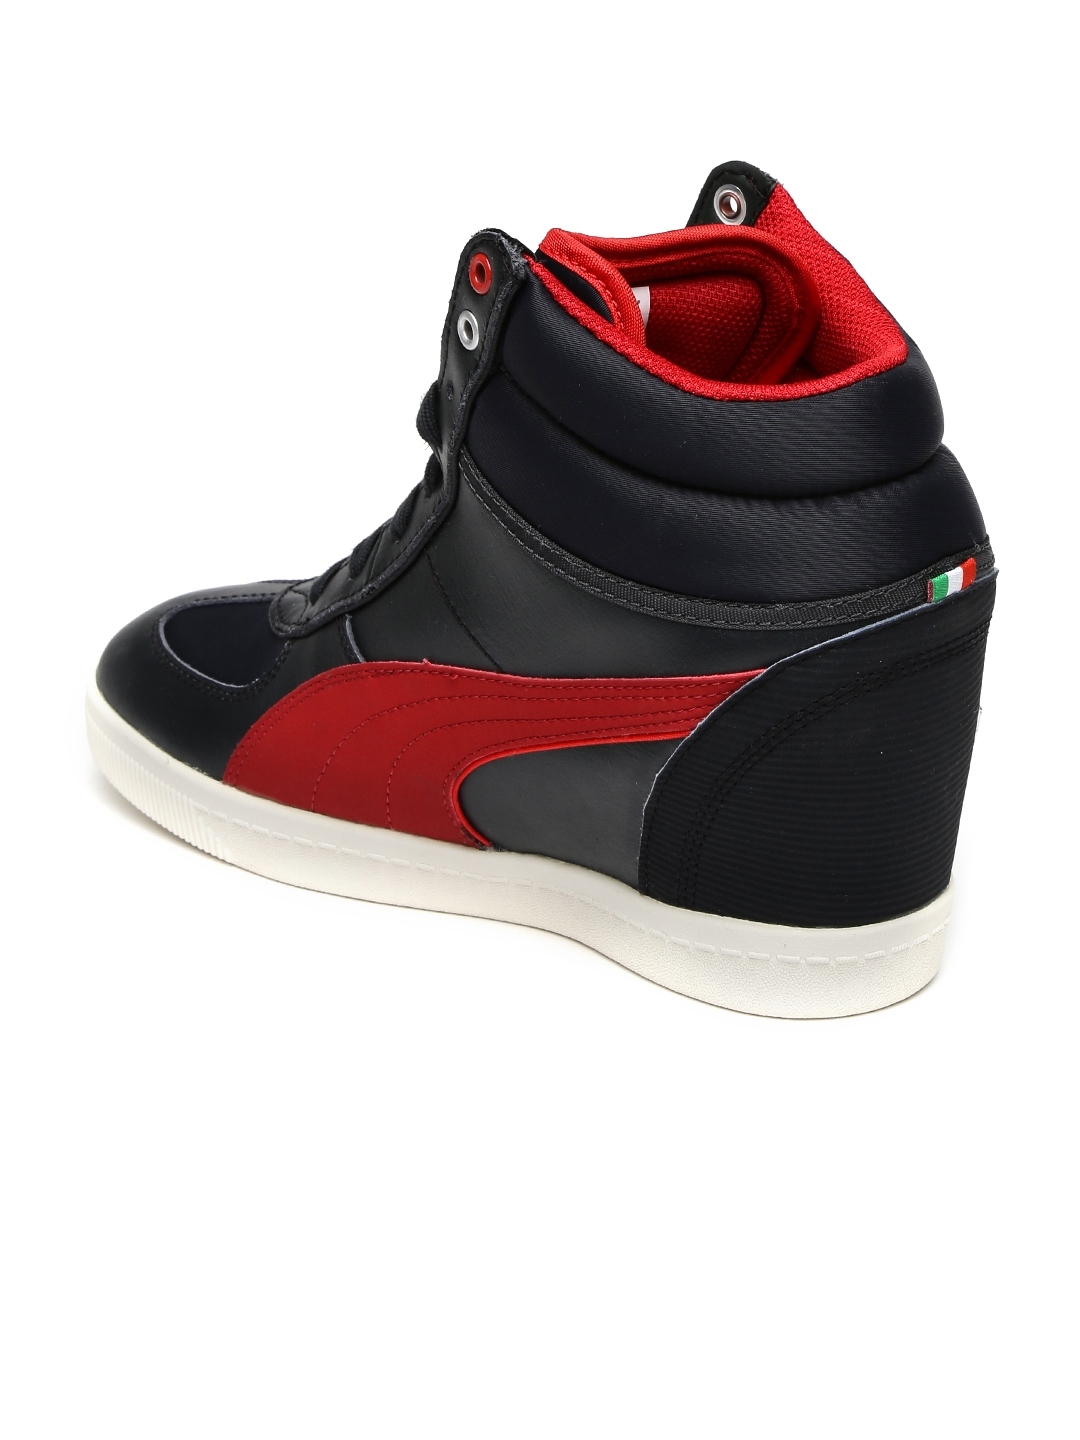 26fadd1cc68 Buy Puma Women Black   Red SF Wedge Selection Coloublocked Sneakers ...